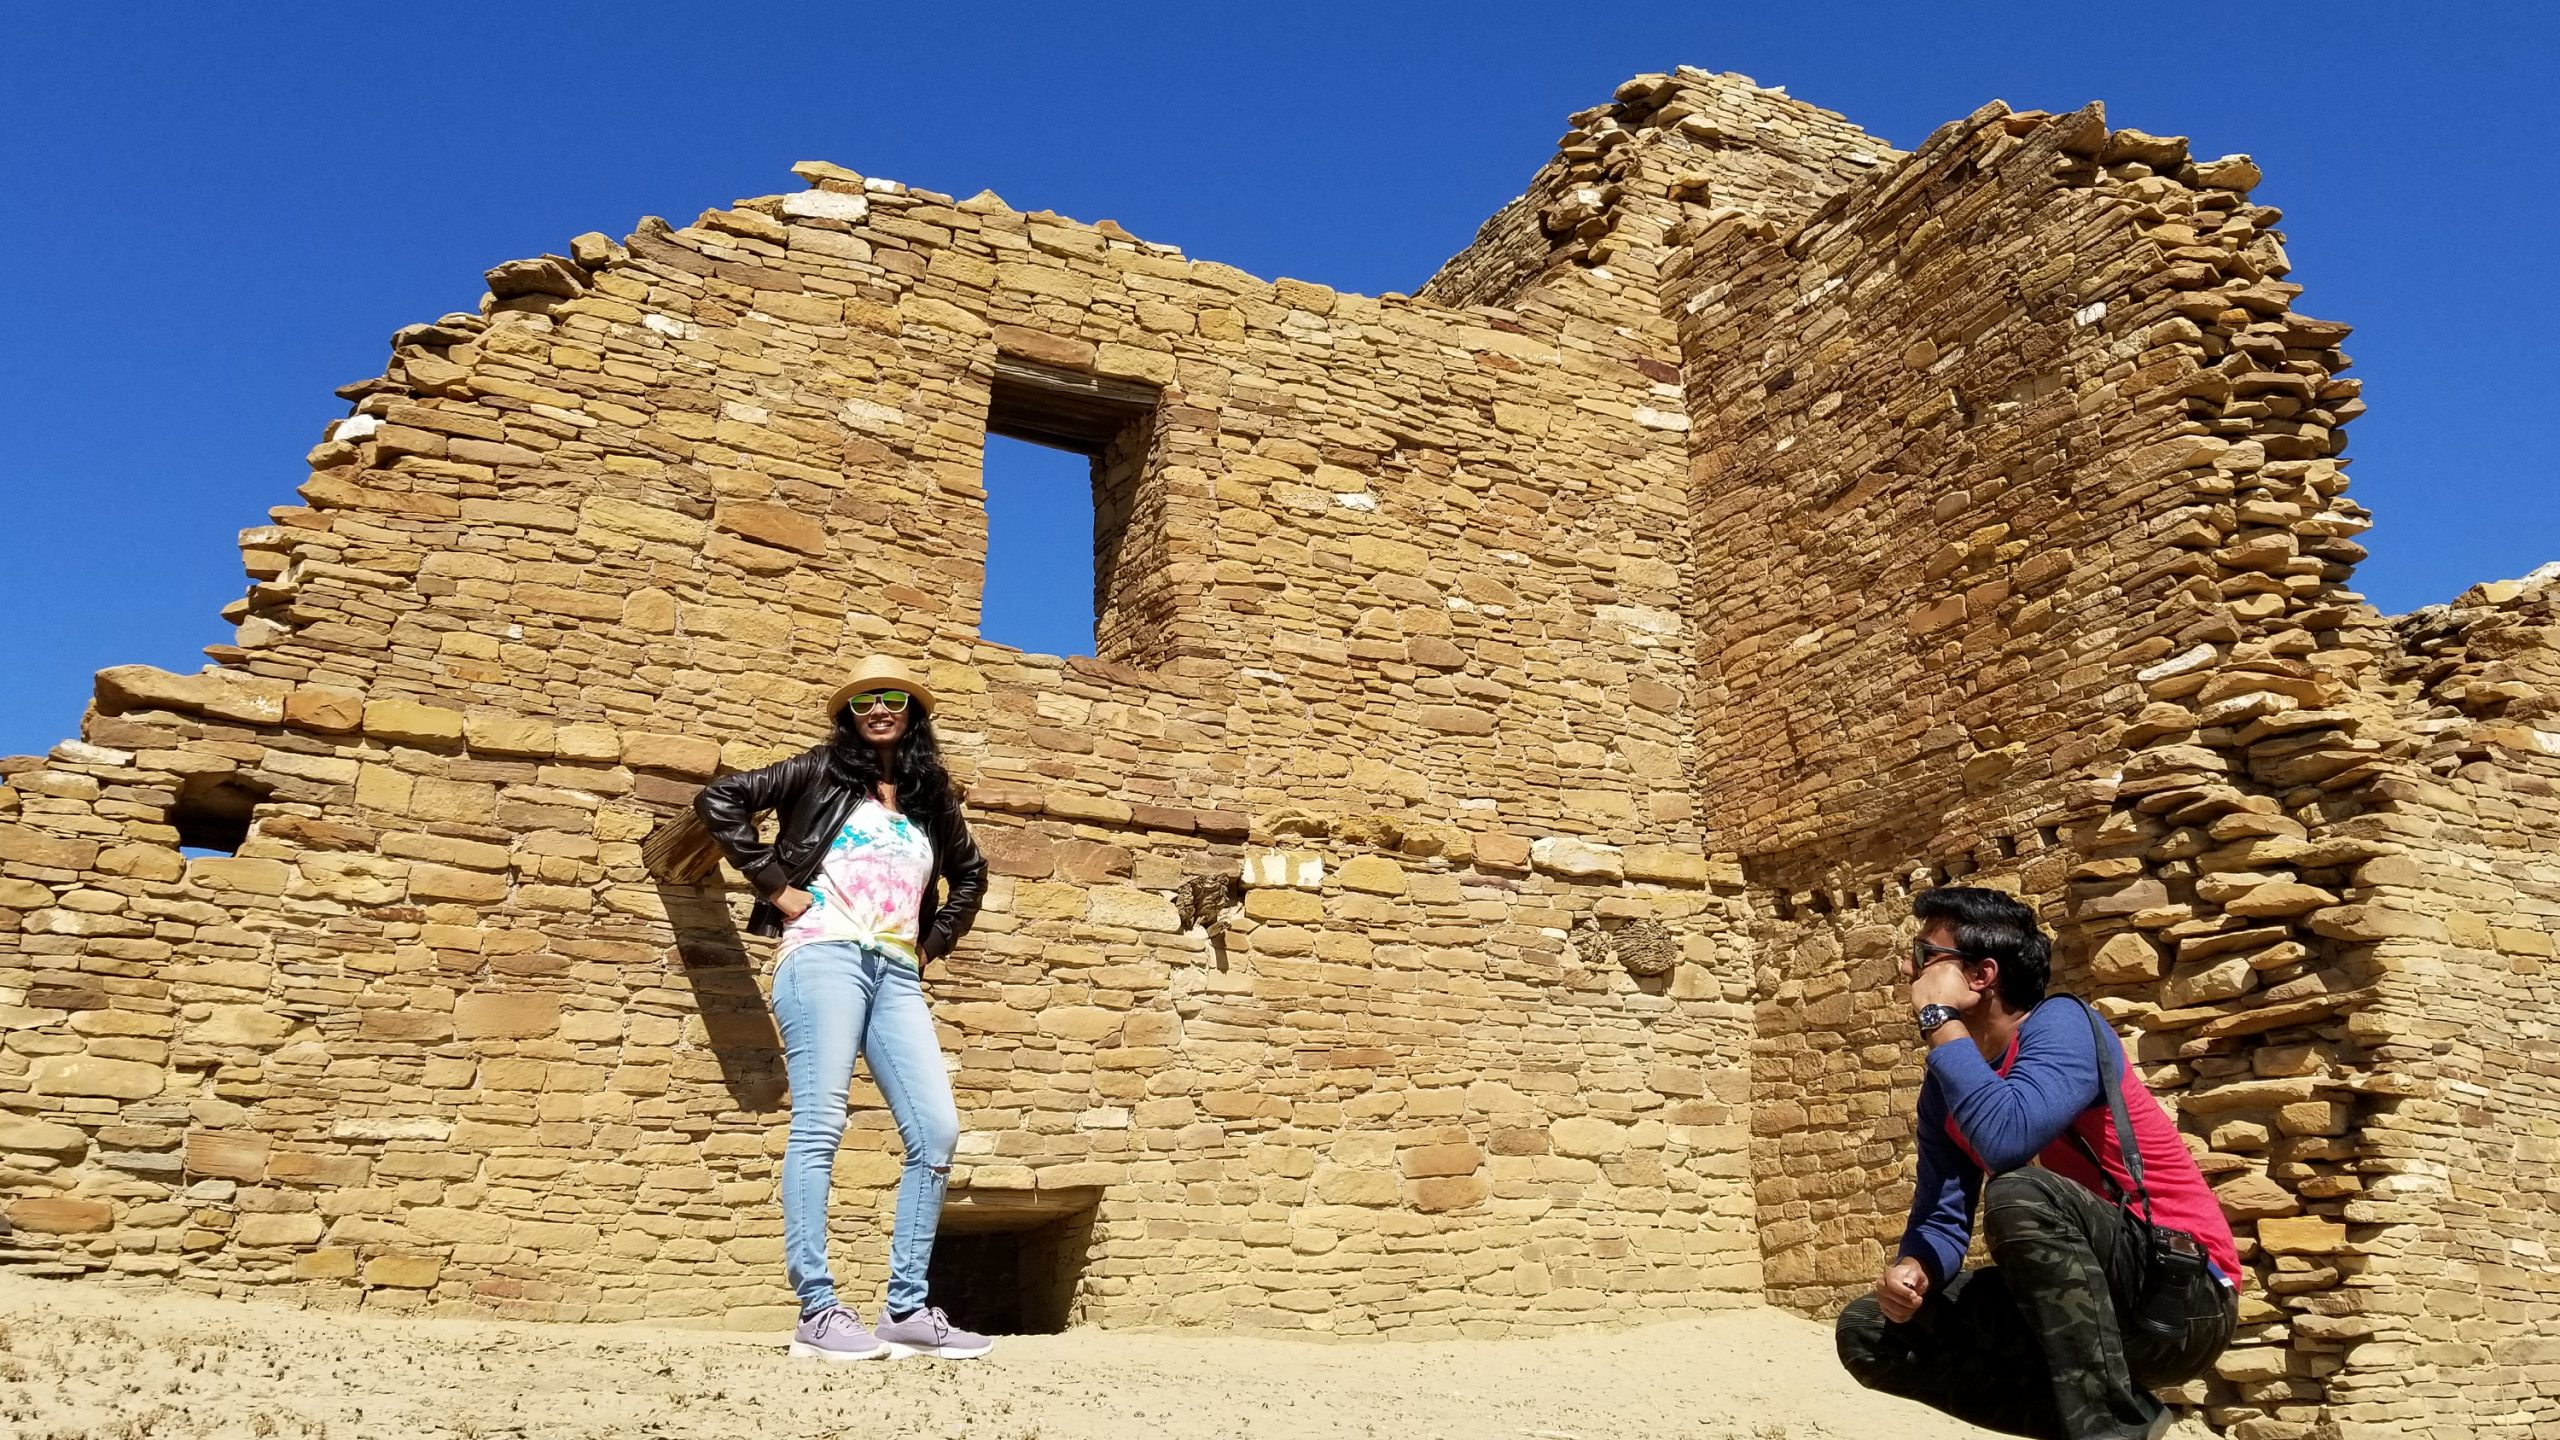 Chaco Culture Historical Park | Road trip during Covid 19